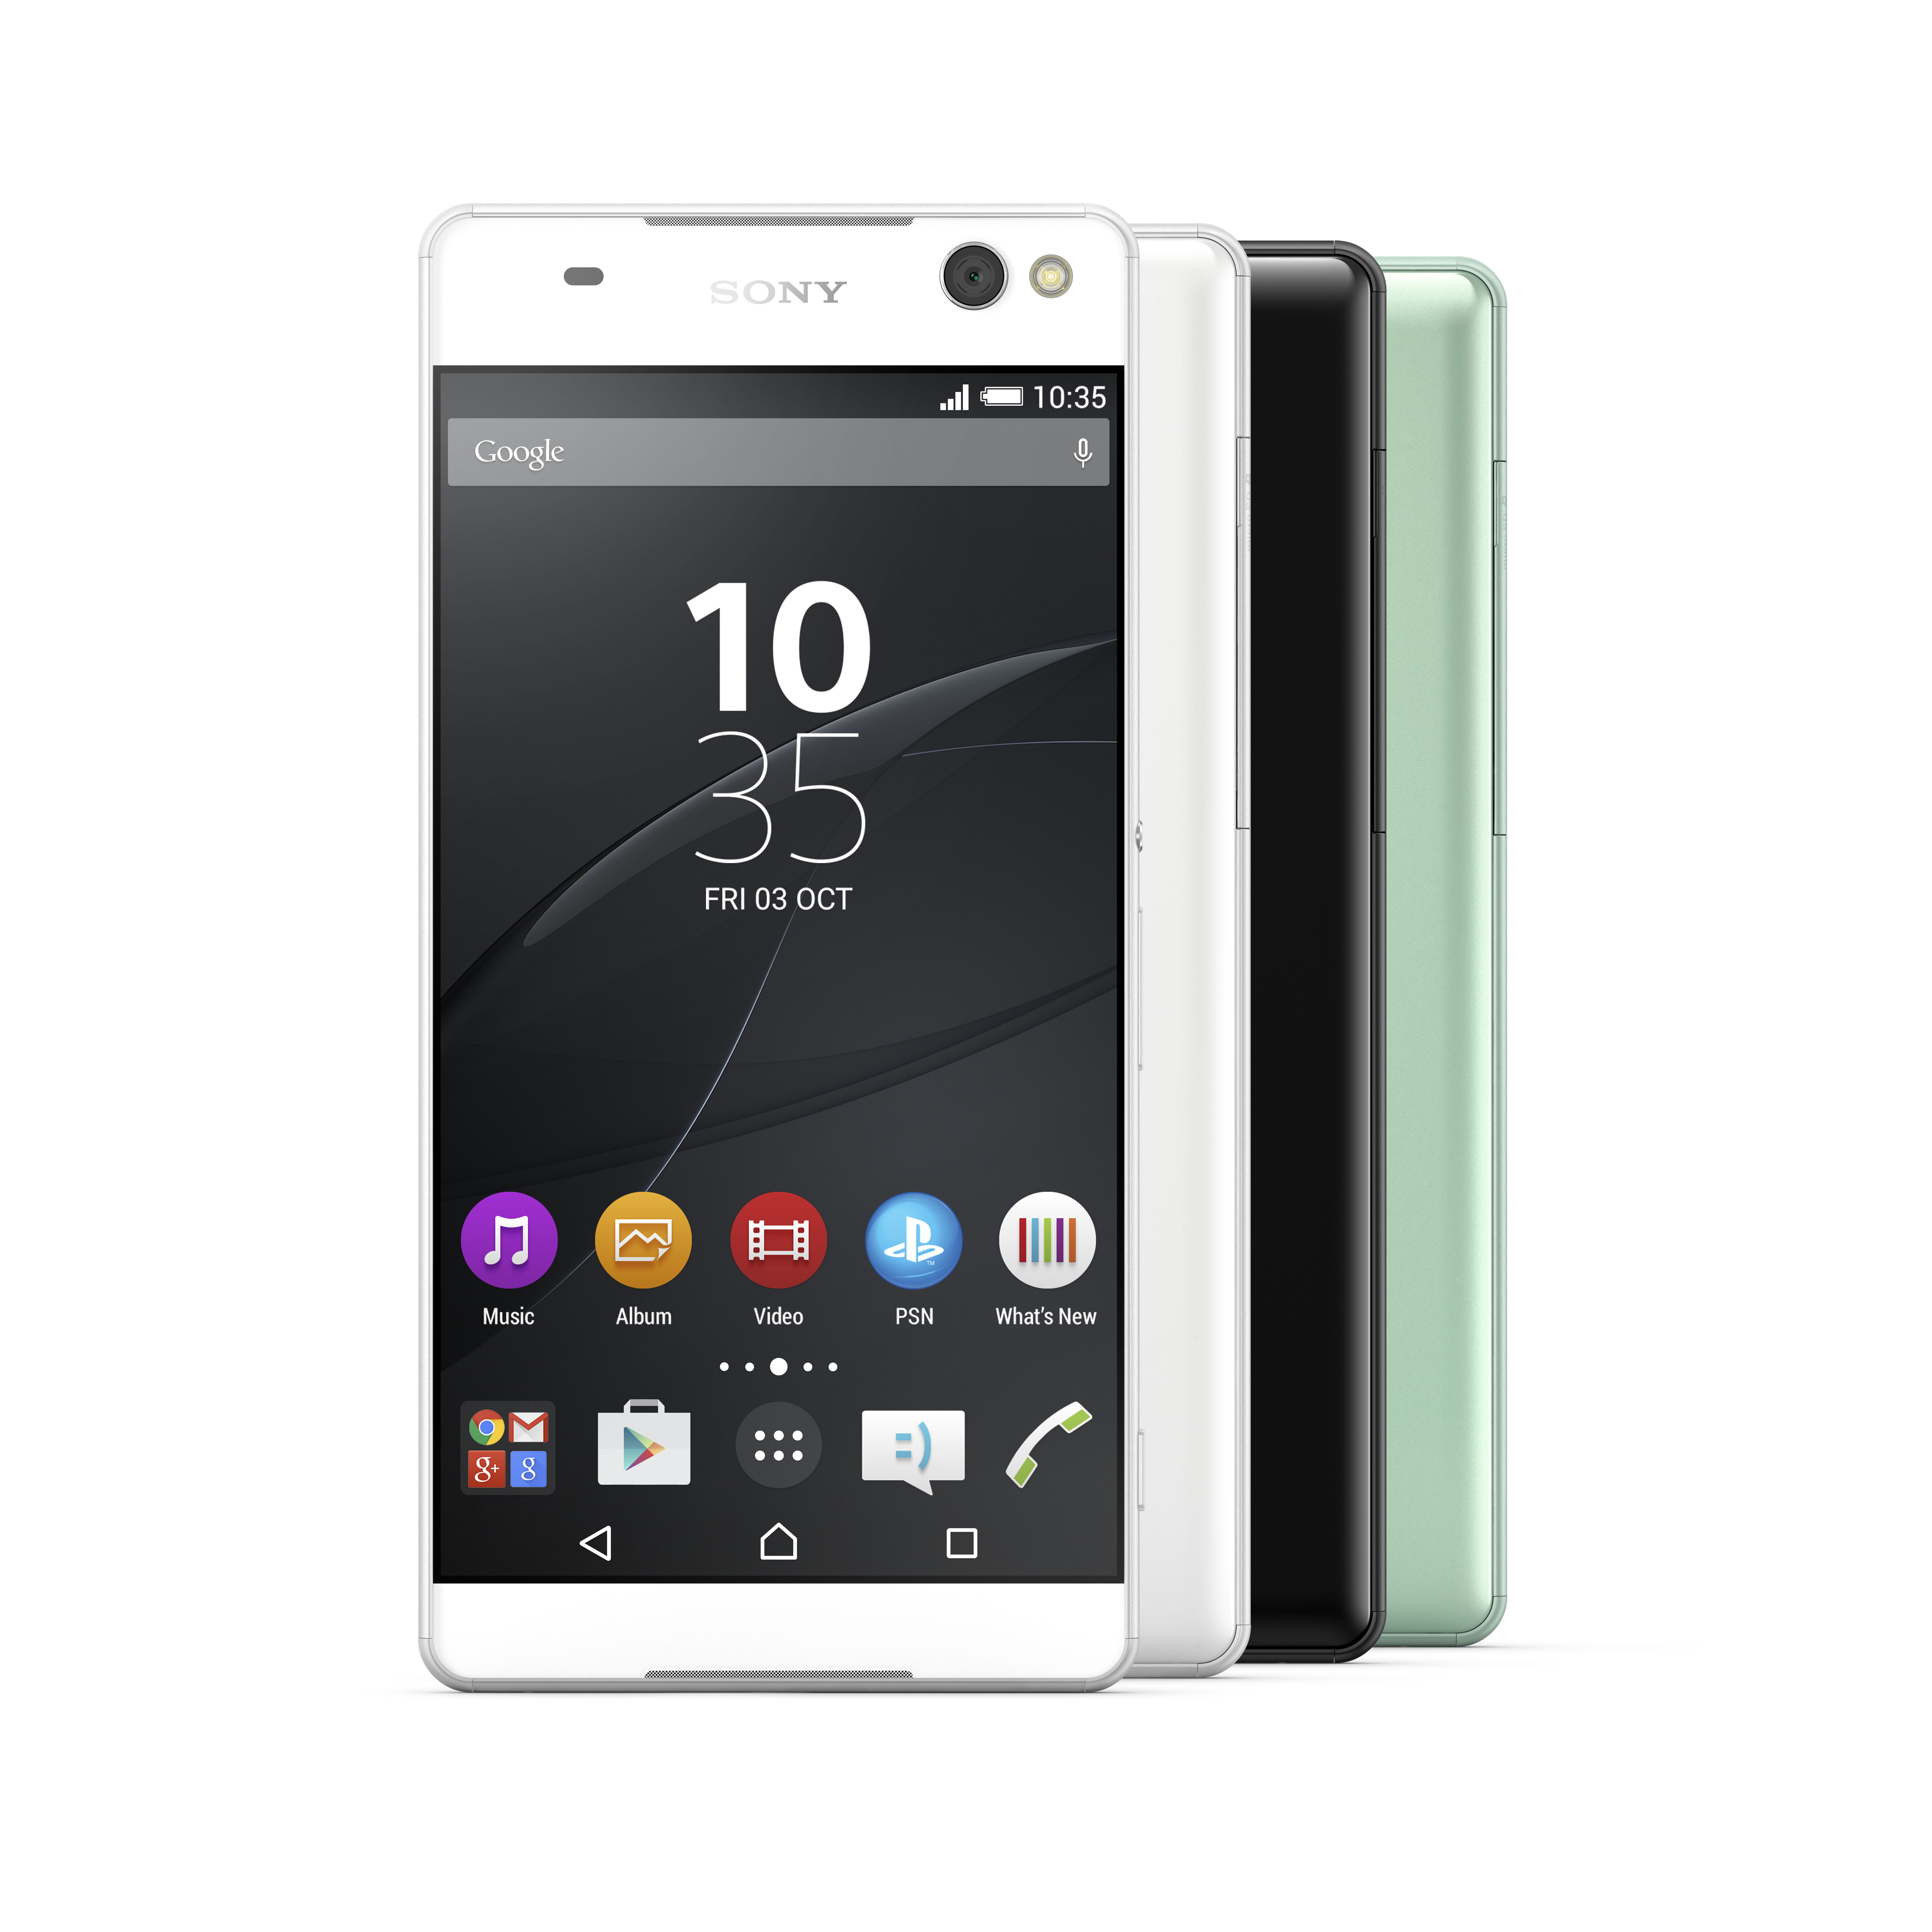 Sony Mobile continues its inno...